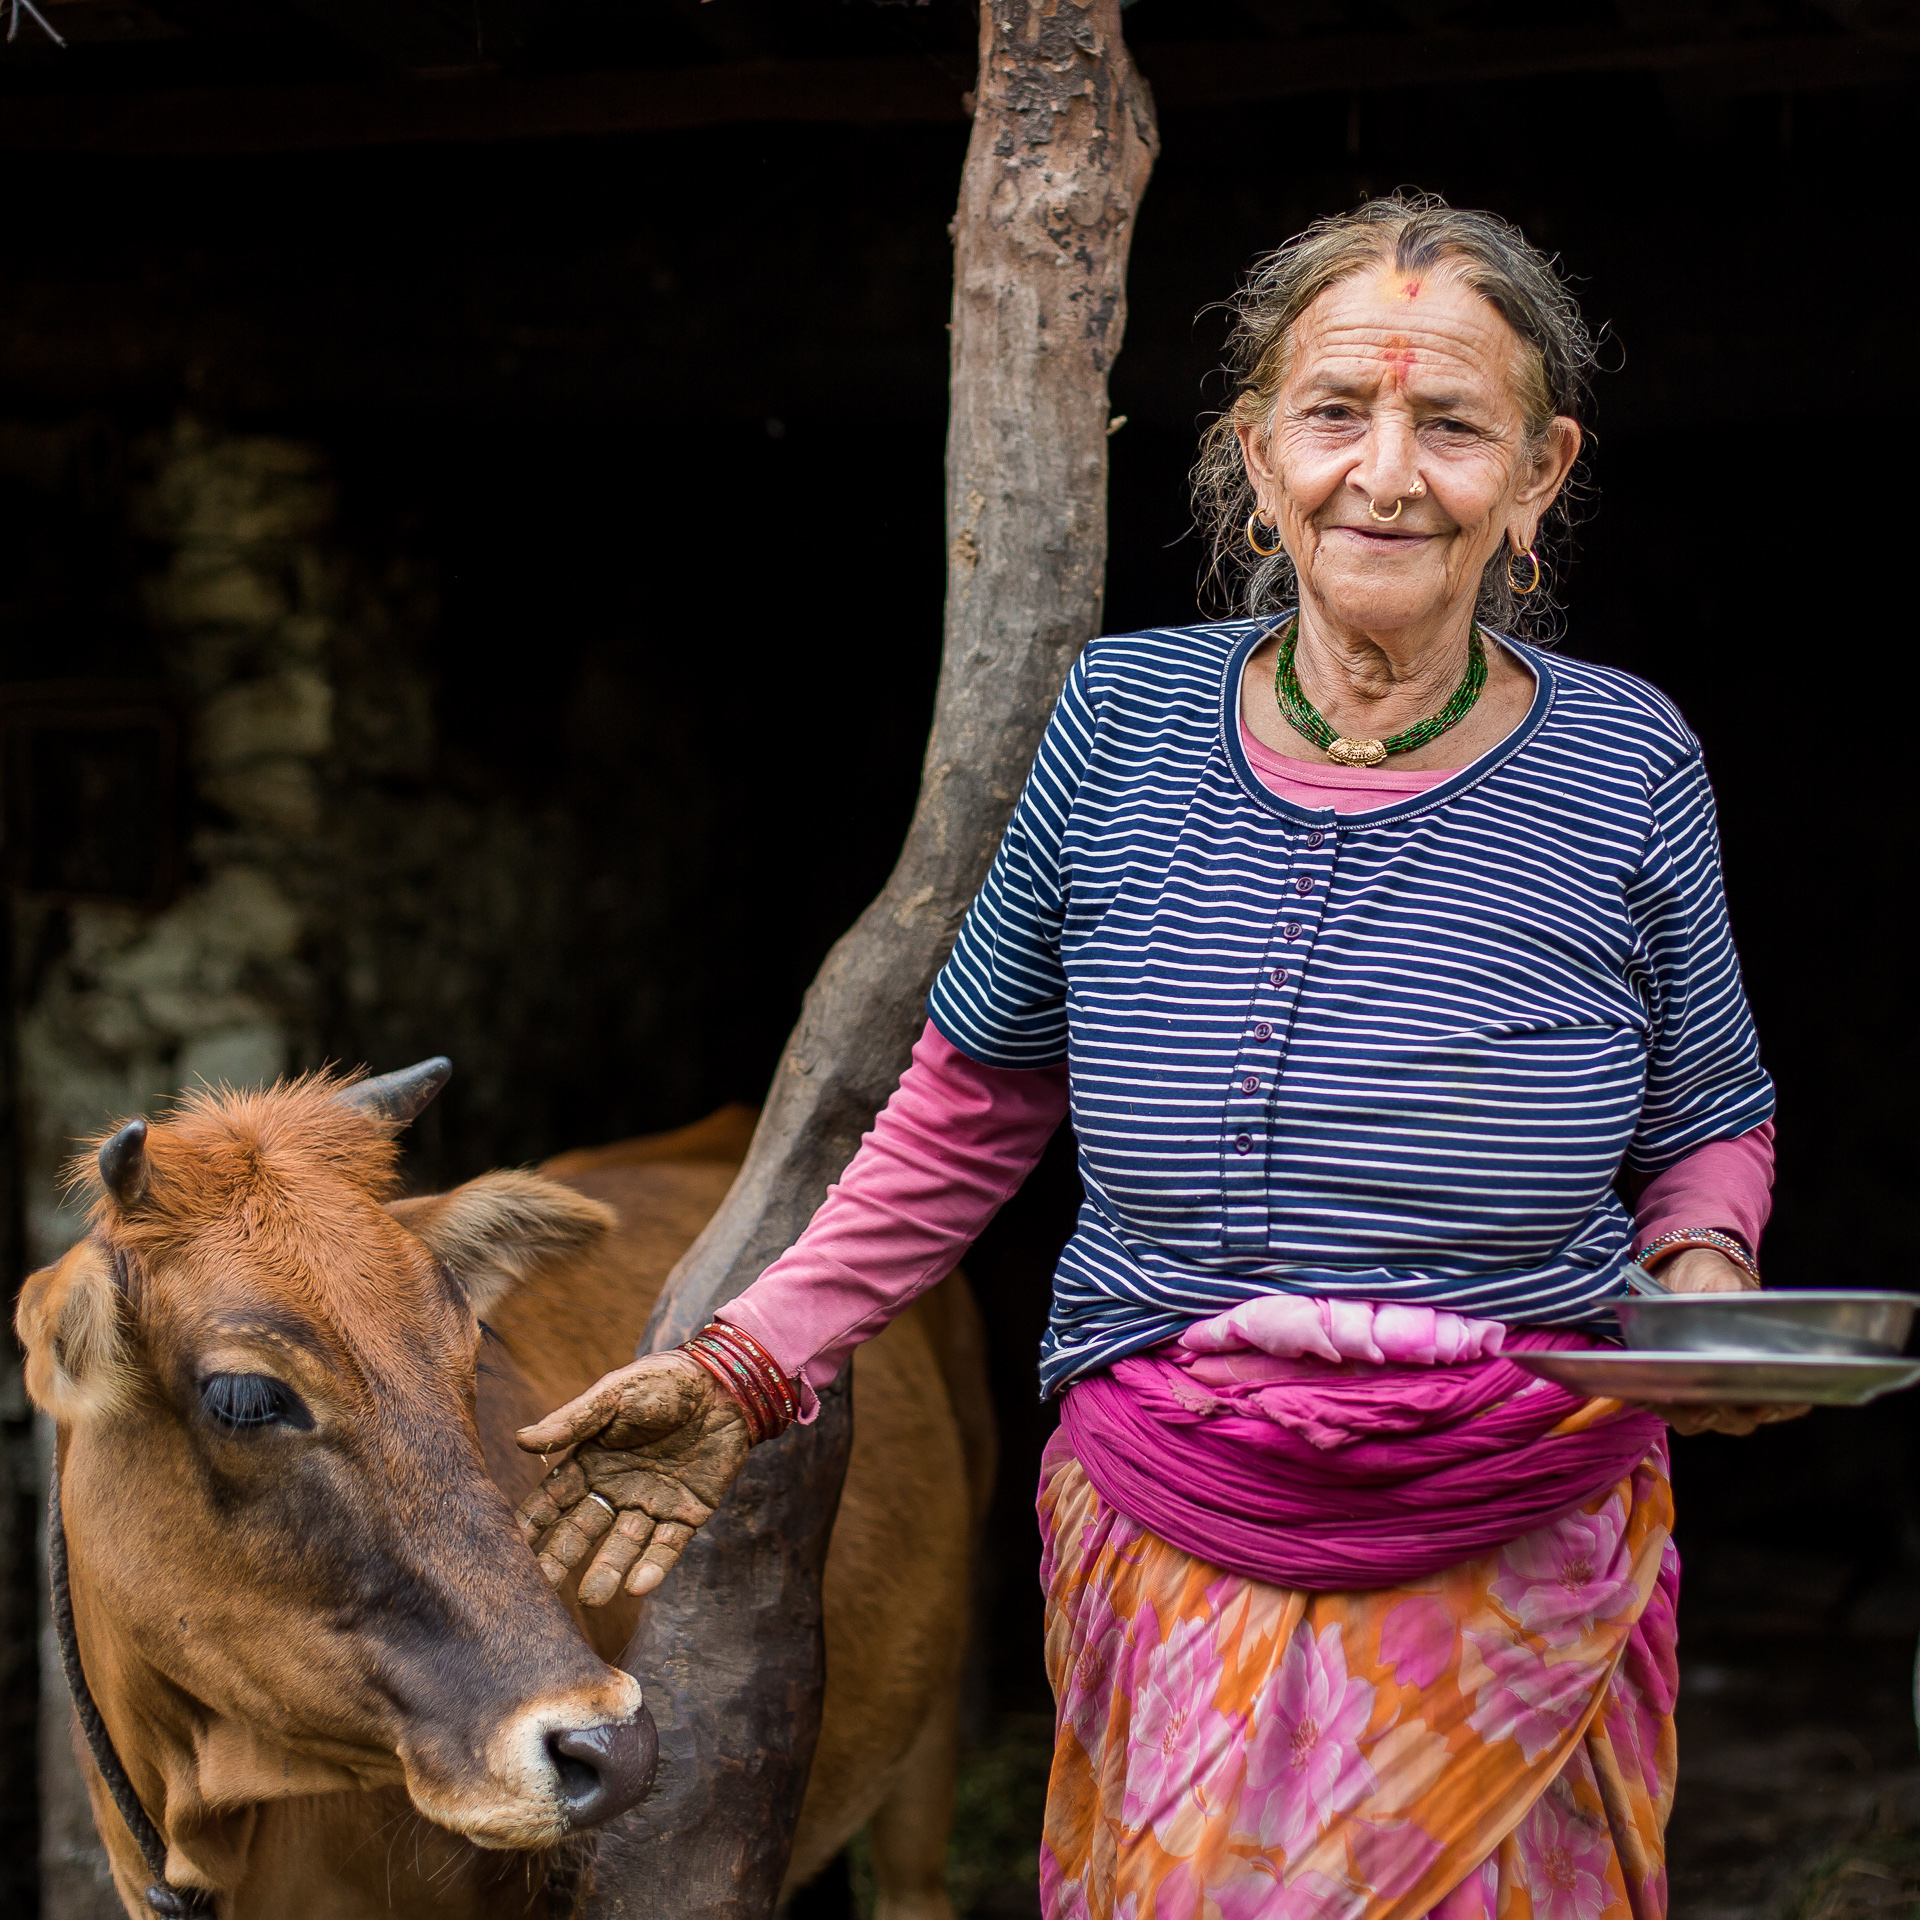 Grandmother of the family wanted to pose, wearing her new shirt, with her ox.